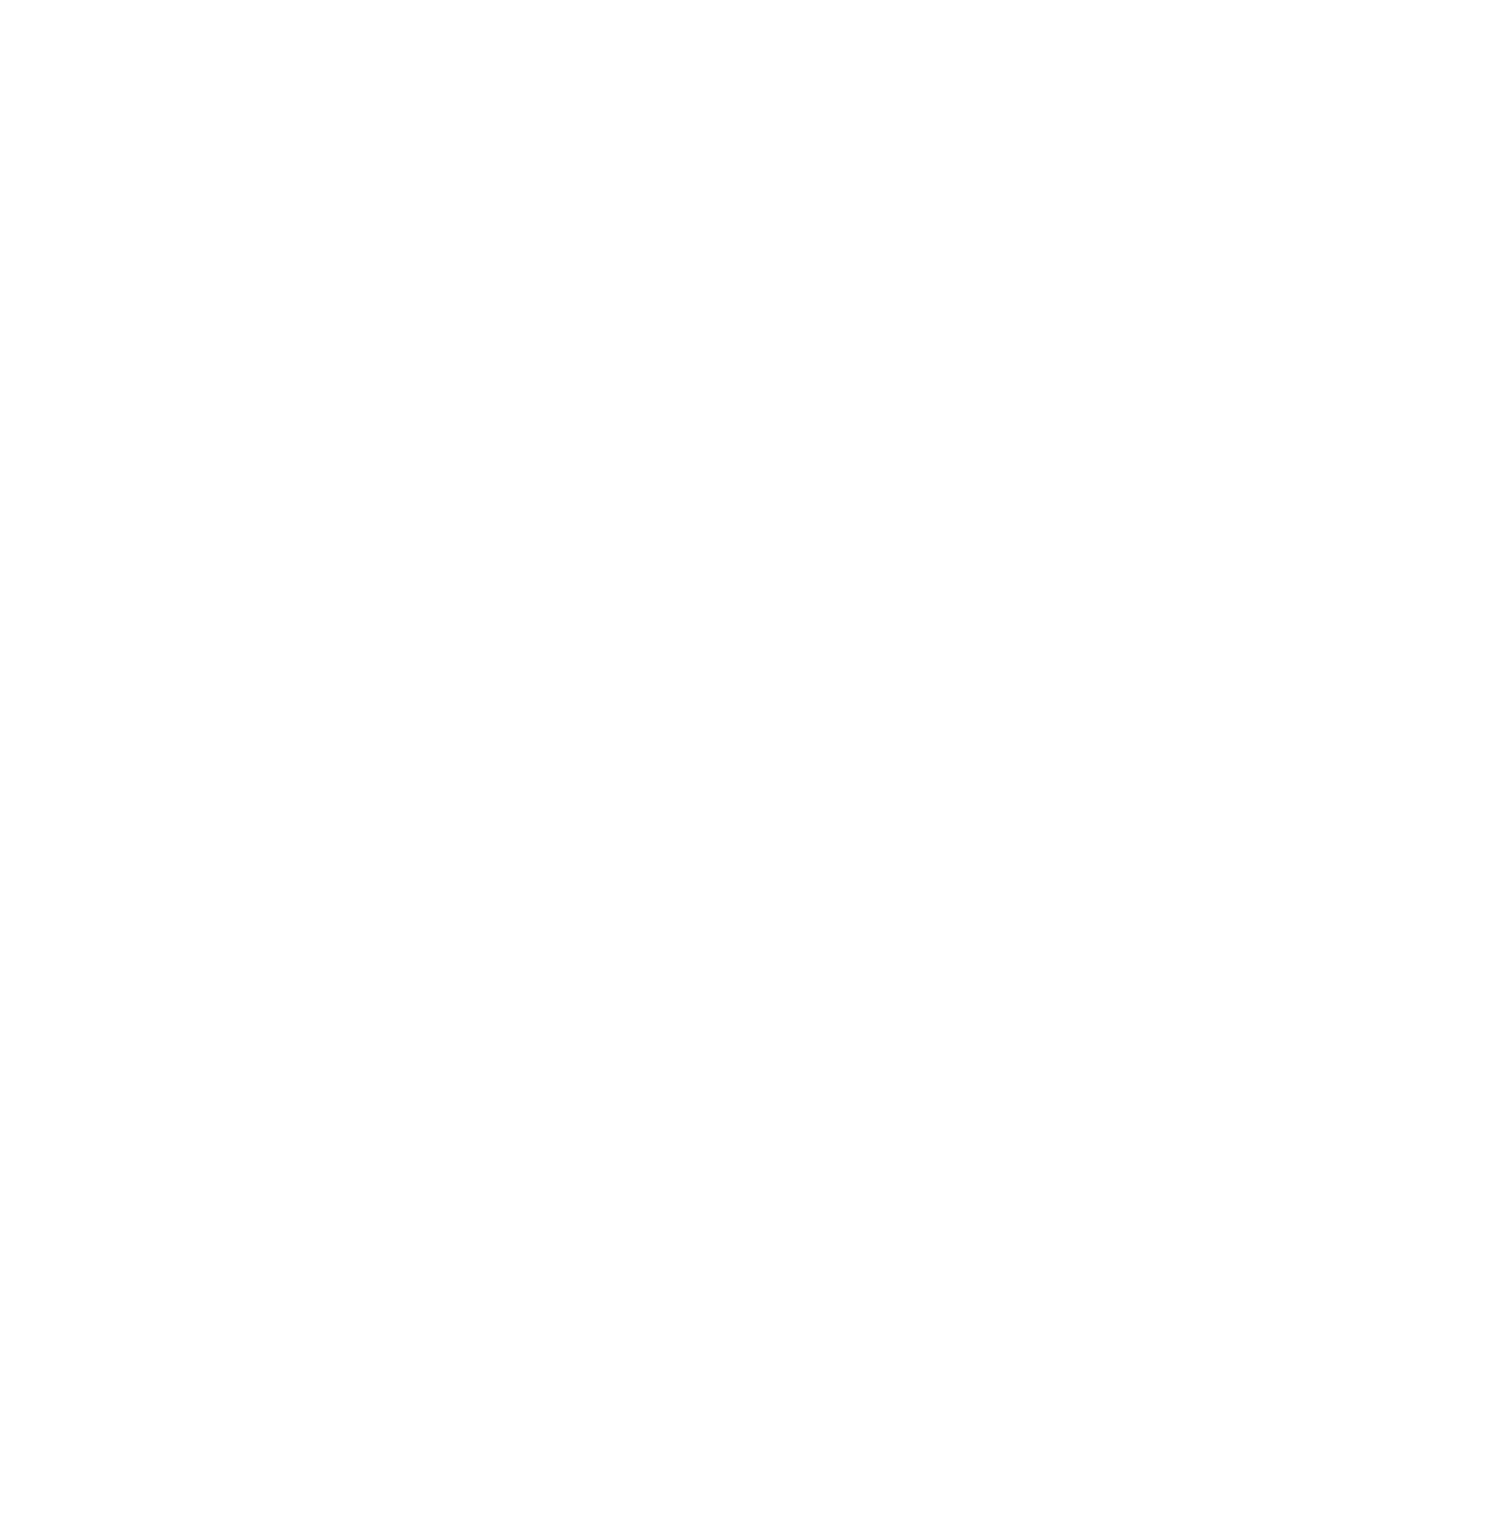 Harlem Road Texas BBQ